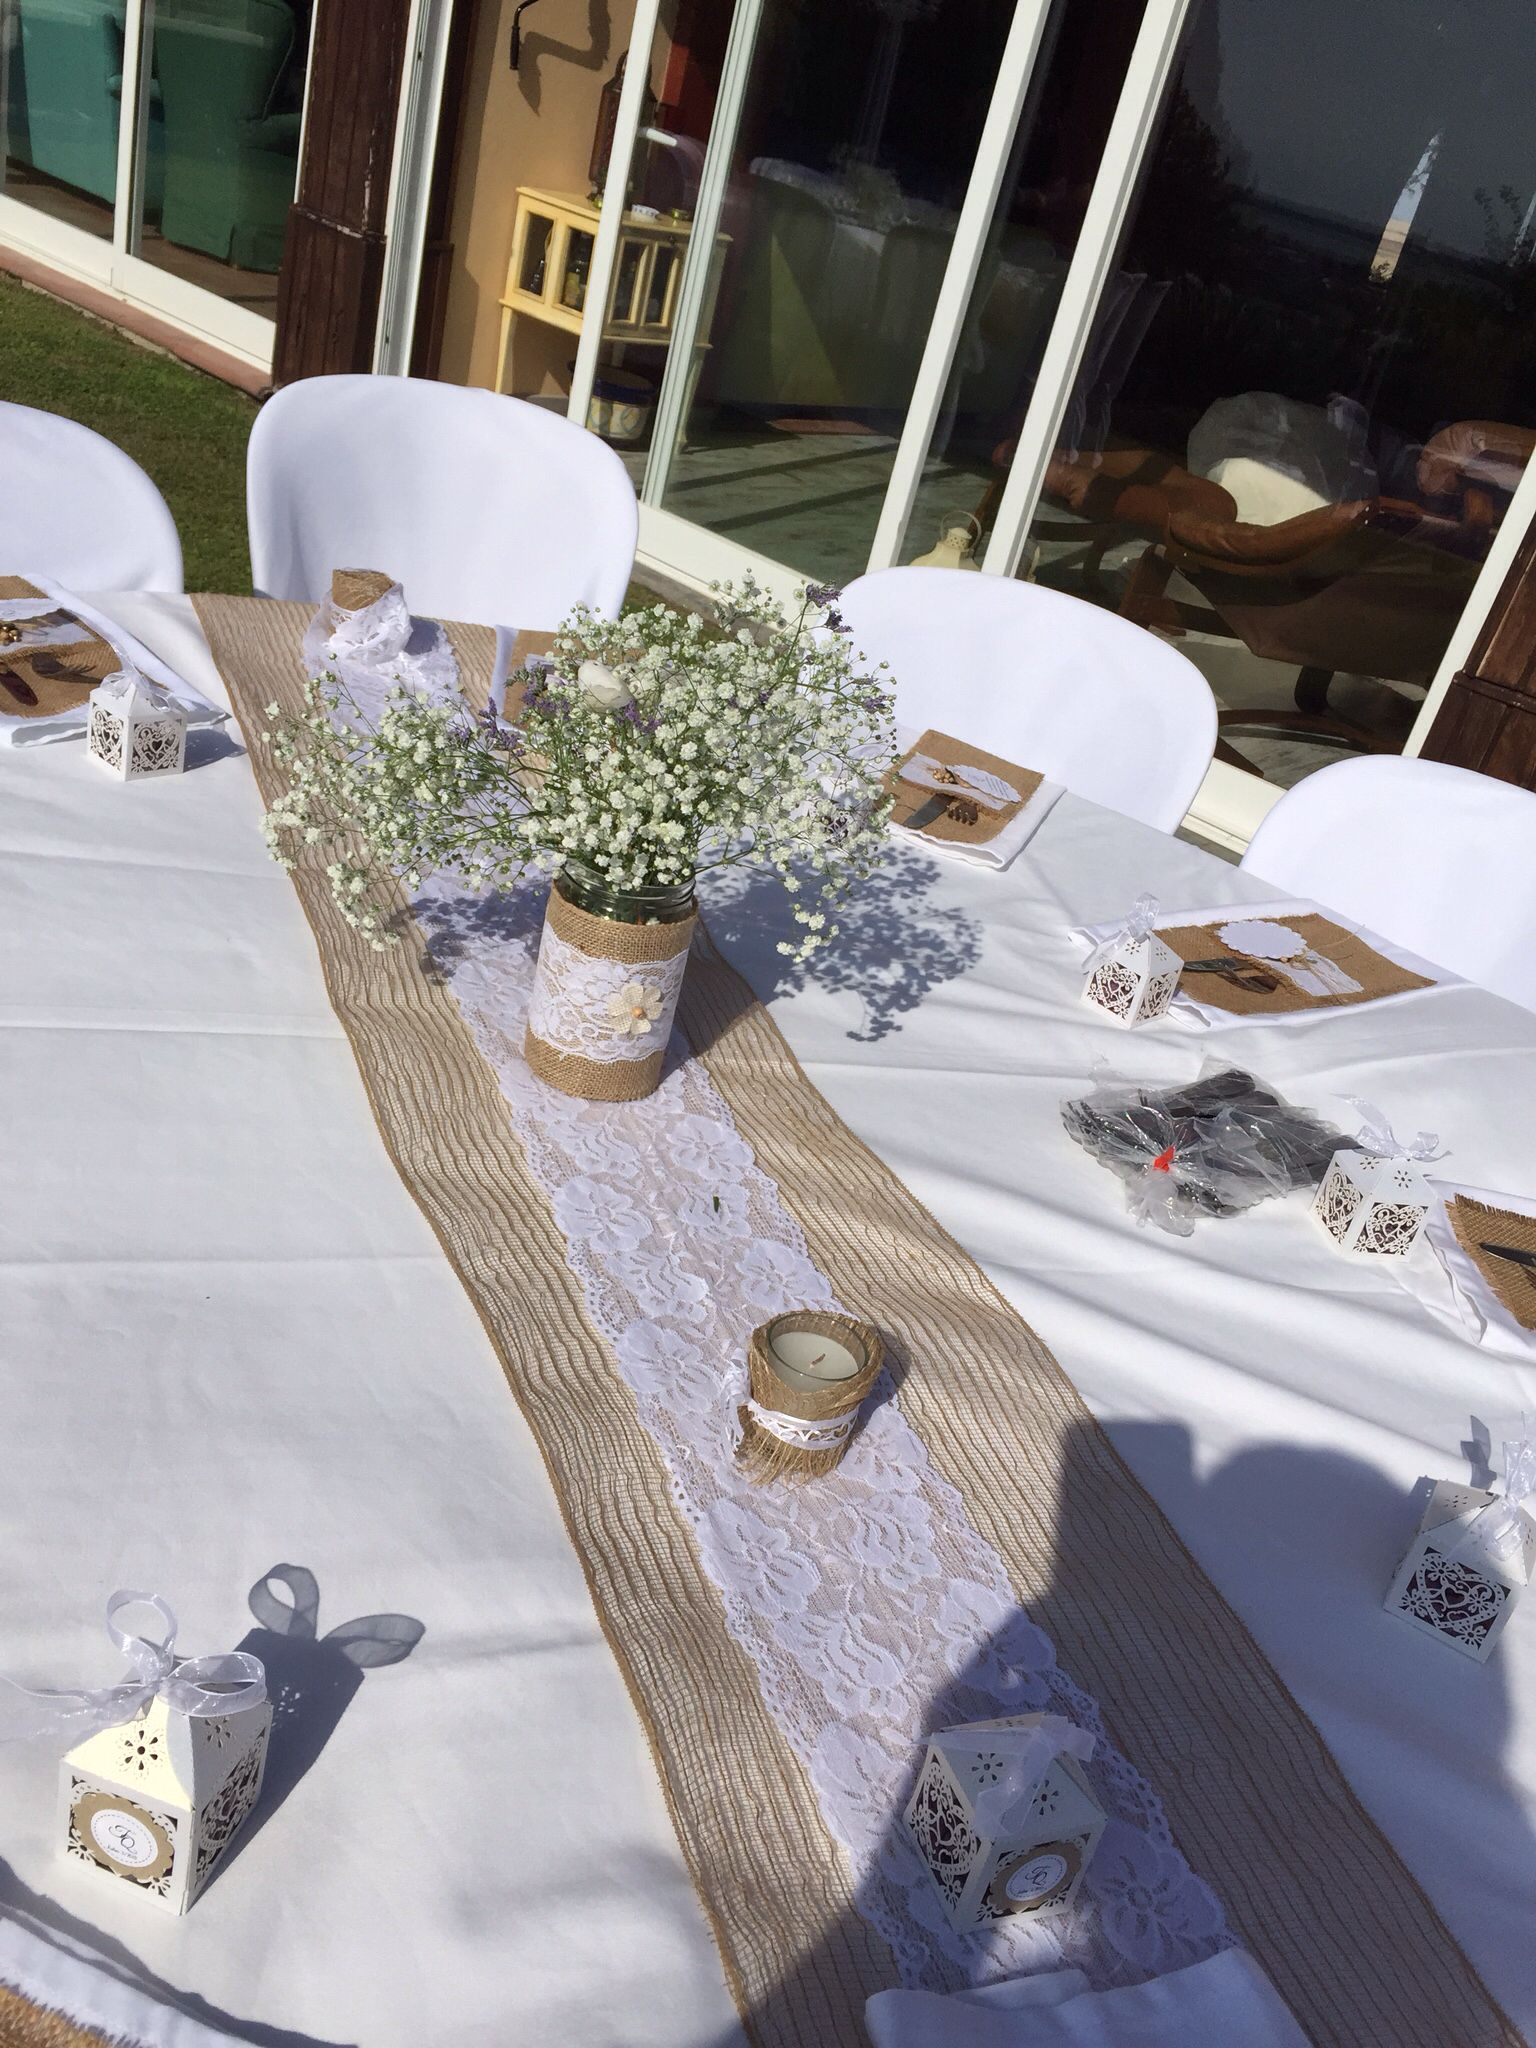 Burlap Table Runner And Flower Pot Camino De Mesa En